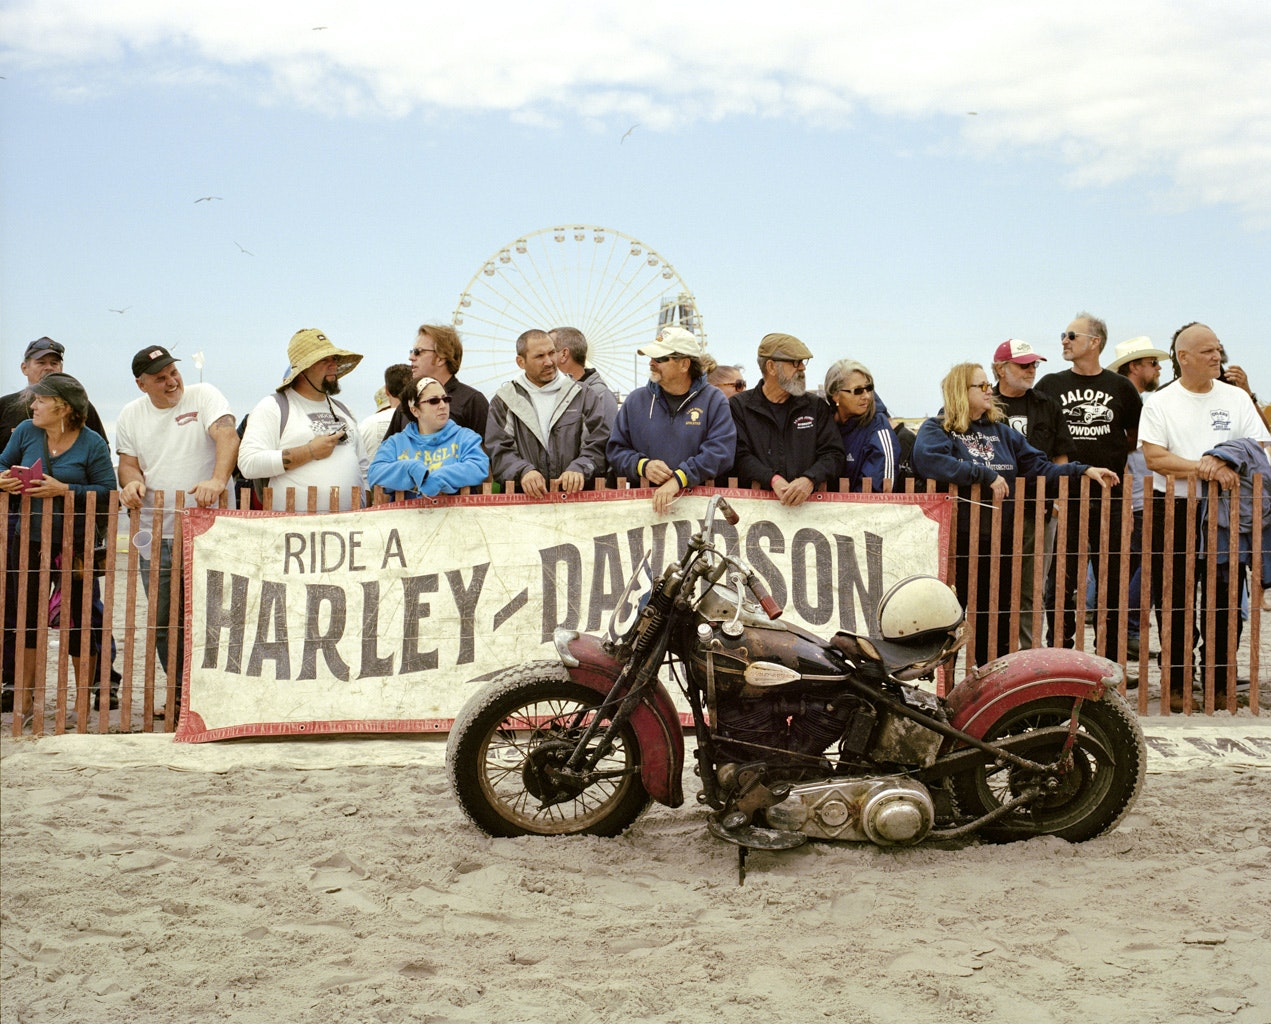 """Vintage cars and motorcycles compete in """"The Race of Gentlemen"""" on the beaches of Wildwood, New Jersey."""